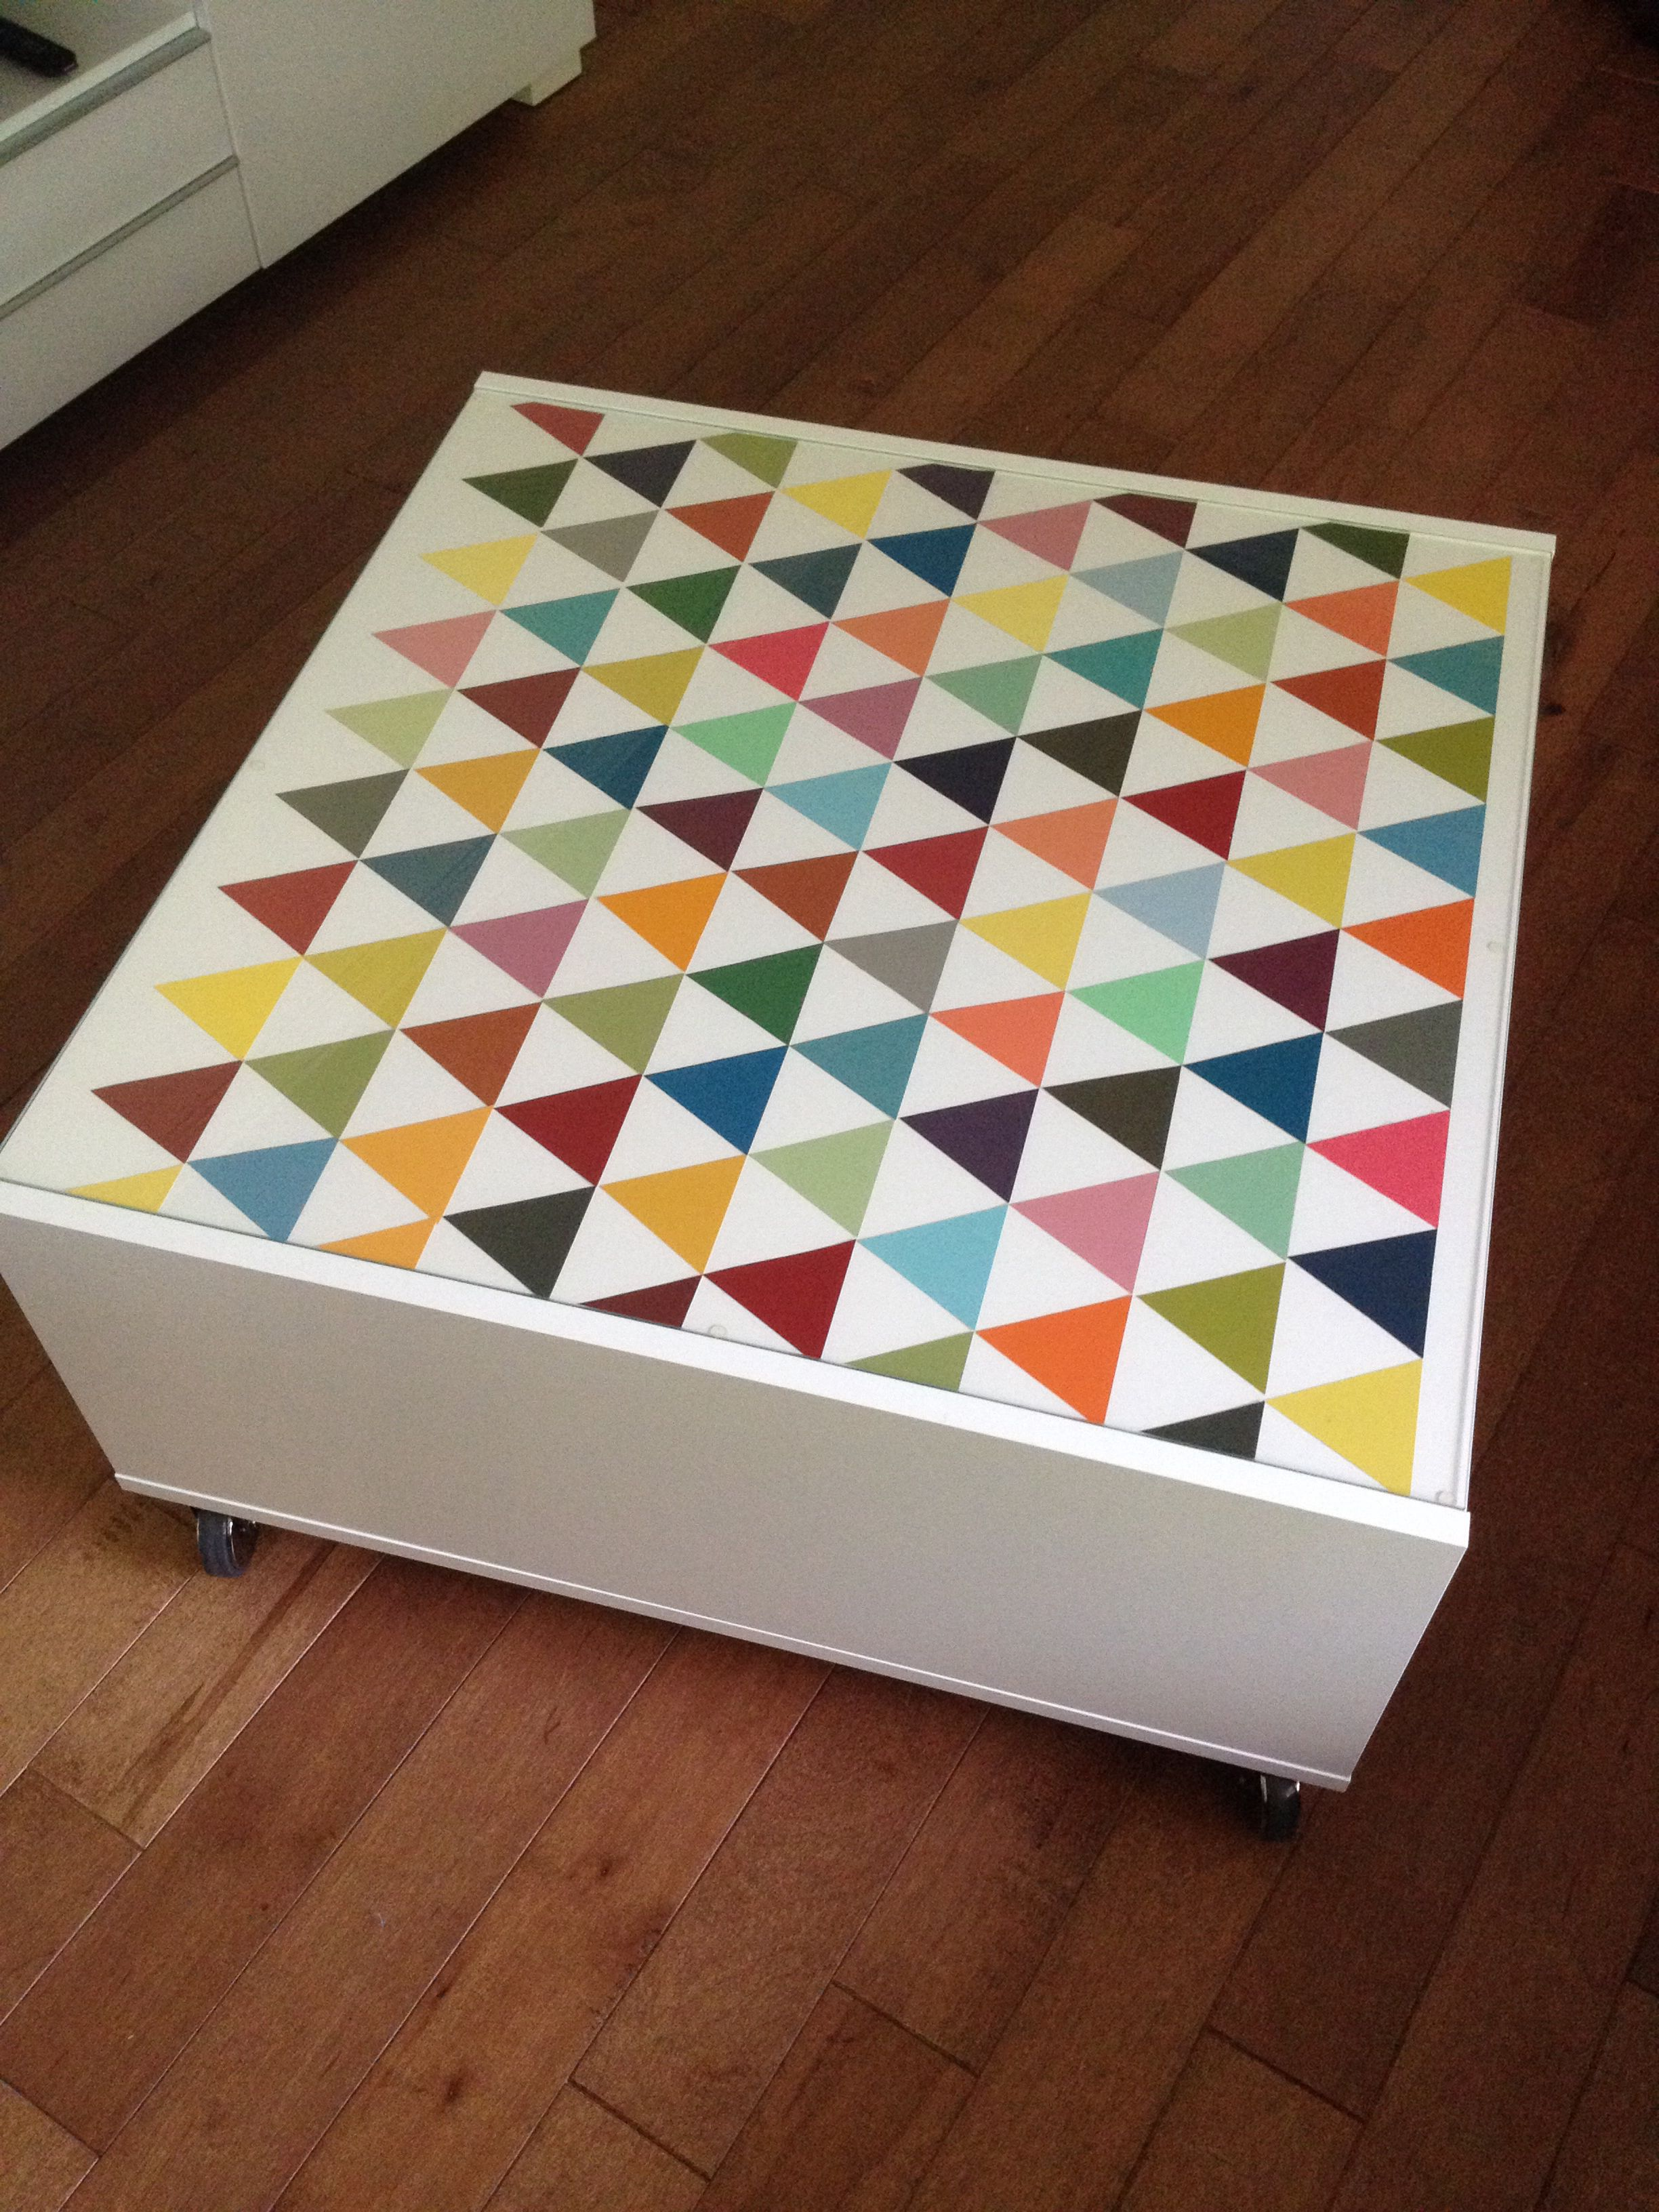 Paint Chip Triangles To Customize My Boksel Ikea Coffee Table Ikea Coffee Table Indoor Decor Art Table [ 3264 x 2448 Pixel ]